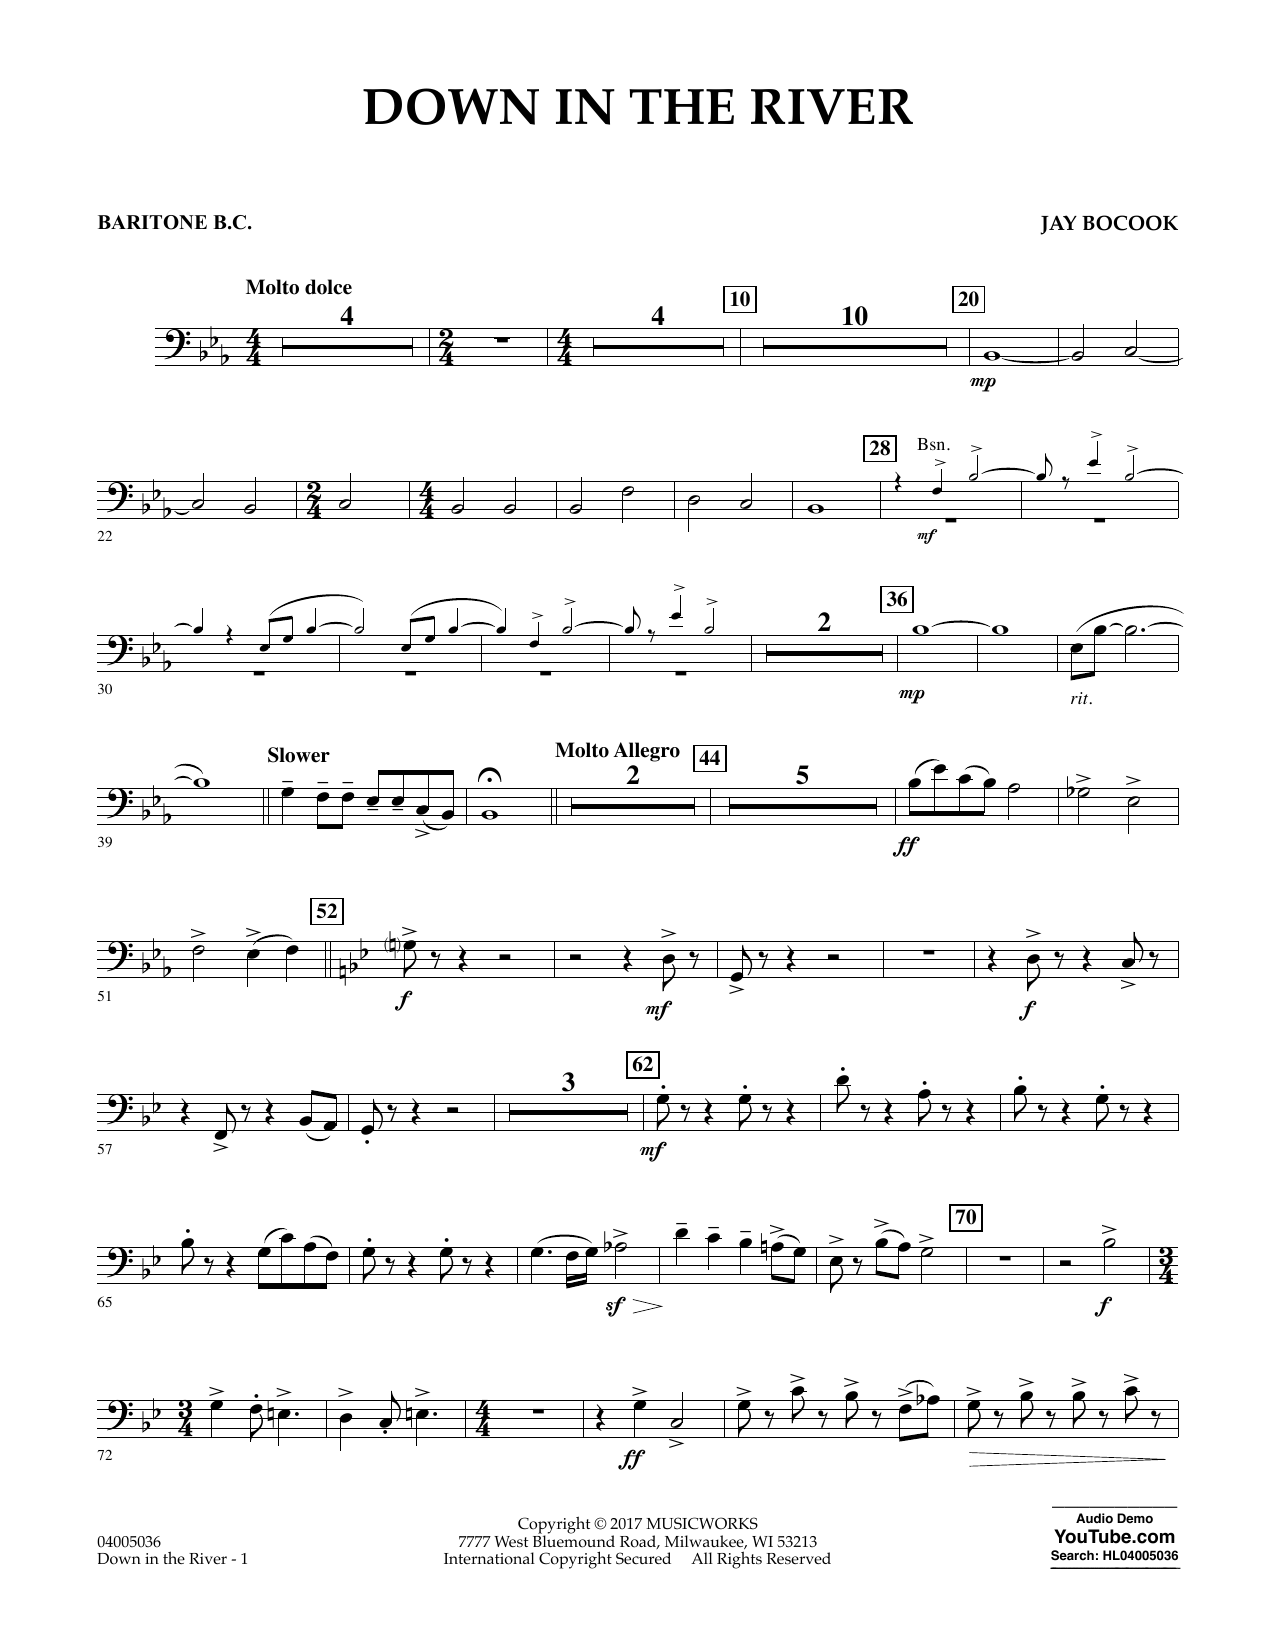 Jay Bocook Down in the River - Baritone B.C. sheet music notes and chords. Download Printable PDF.